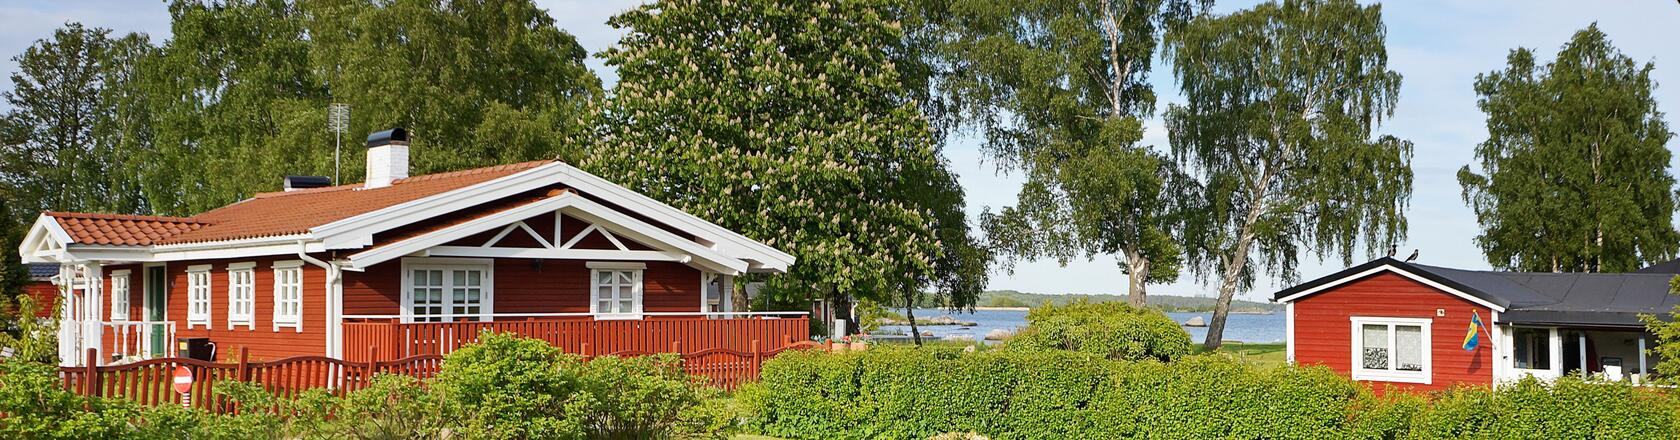 Kyrkhult in Sweden - Rent a holiday home  with DanCenter